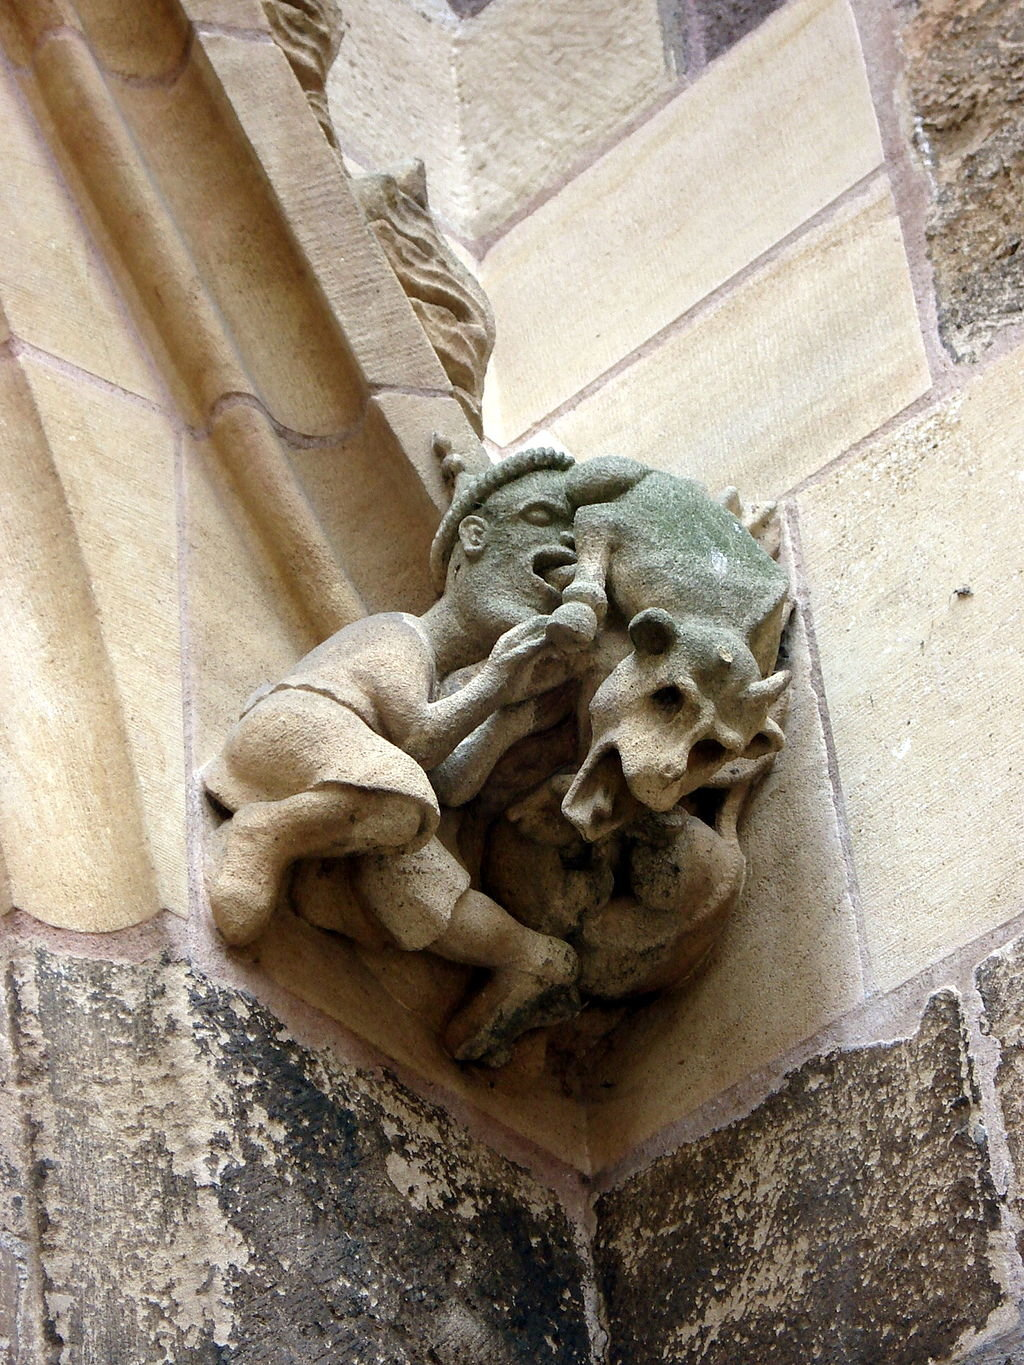 A Judensau on the Cathedral of St. Martin in Colmar, Germany.